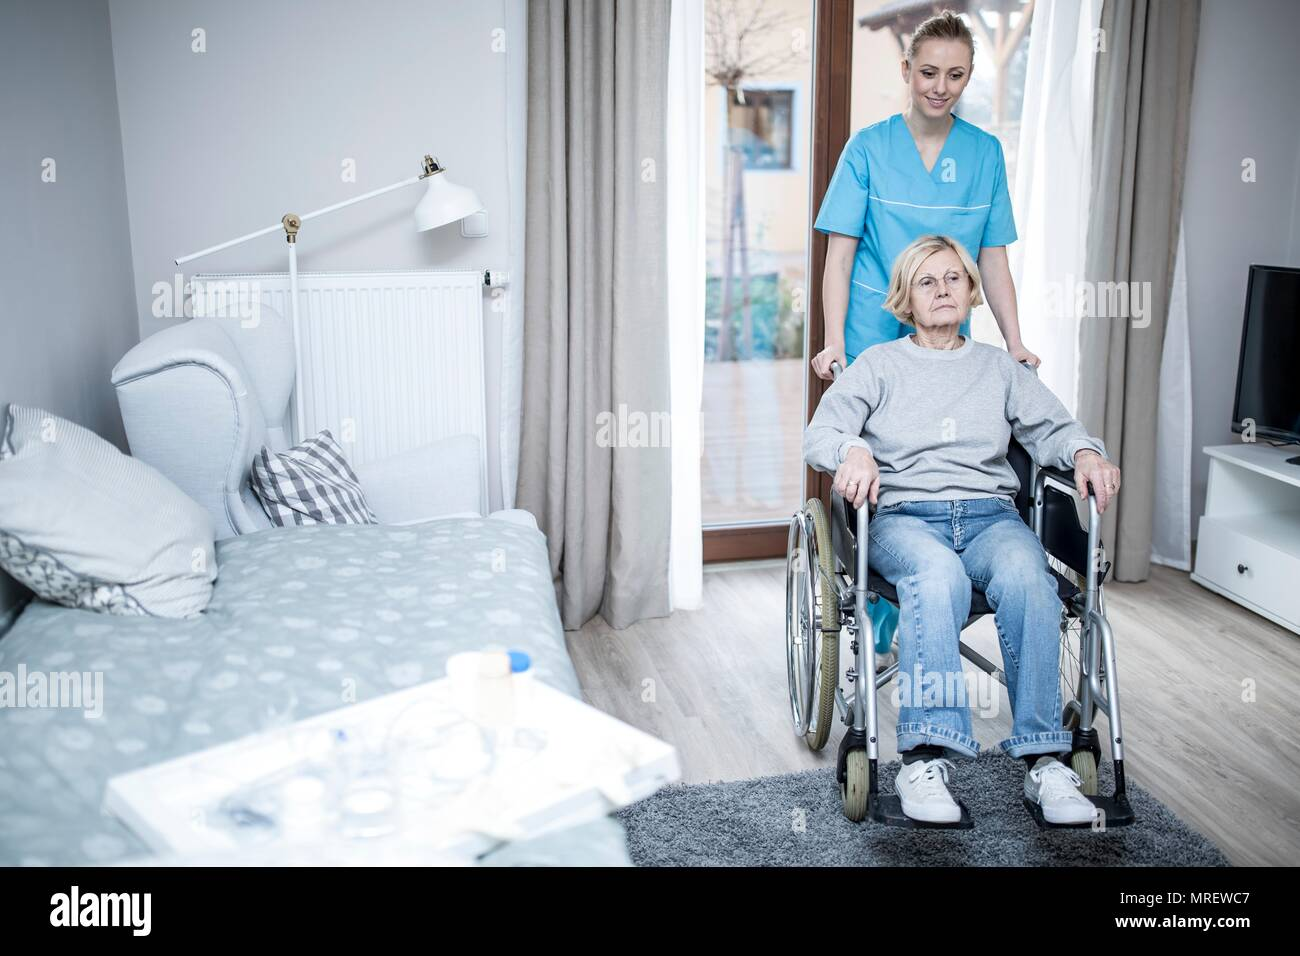 Senior woman in wheelchair with care worker in care home. - Stock Image